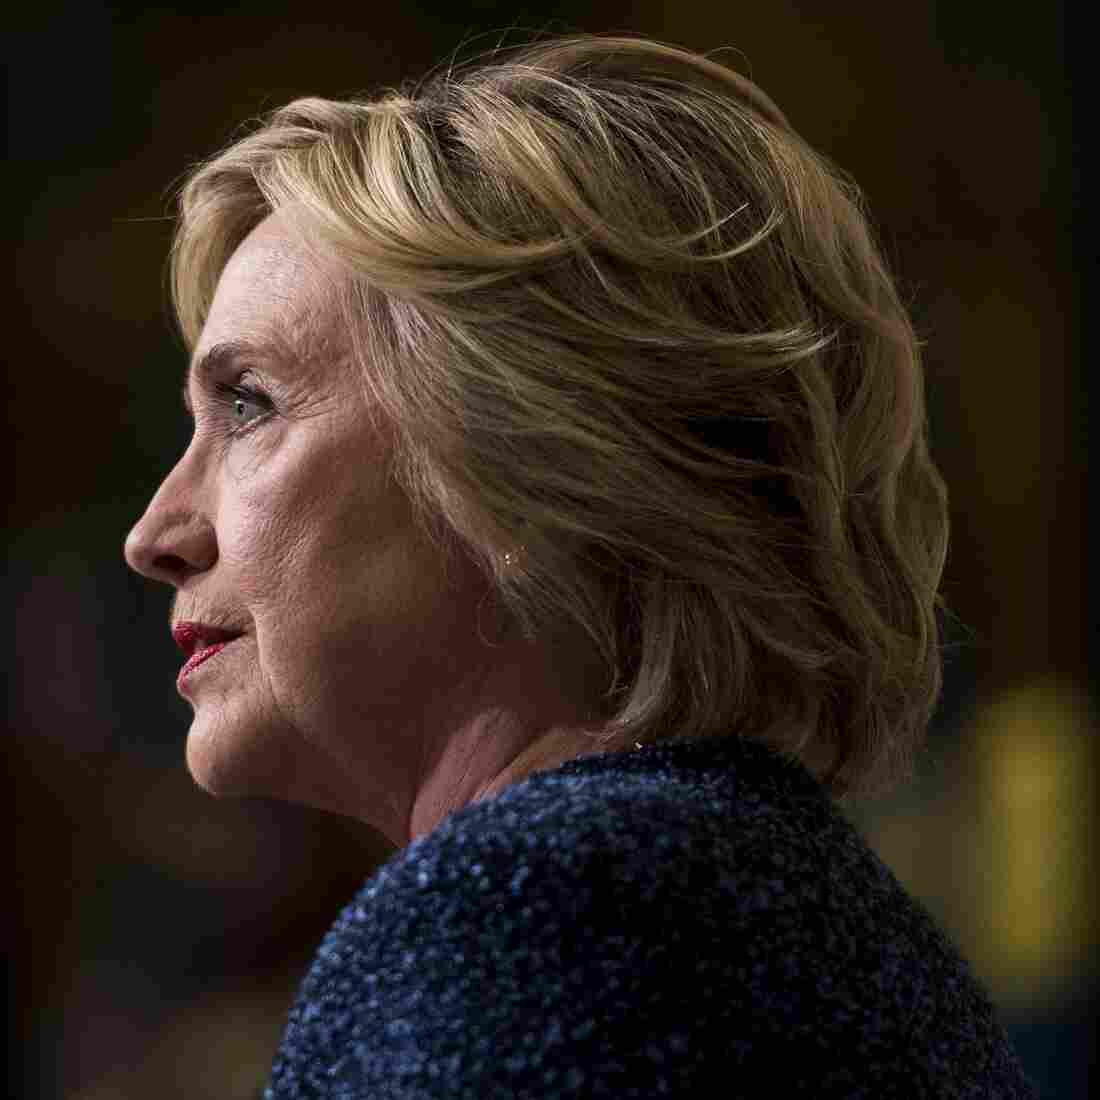 Hillary Clinton's 'Basket Of Deplorables,' In Full Context Of This Ugly Campaign